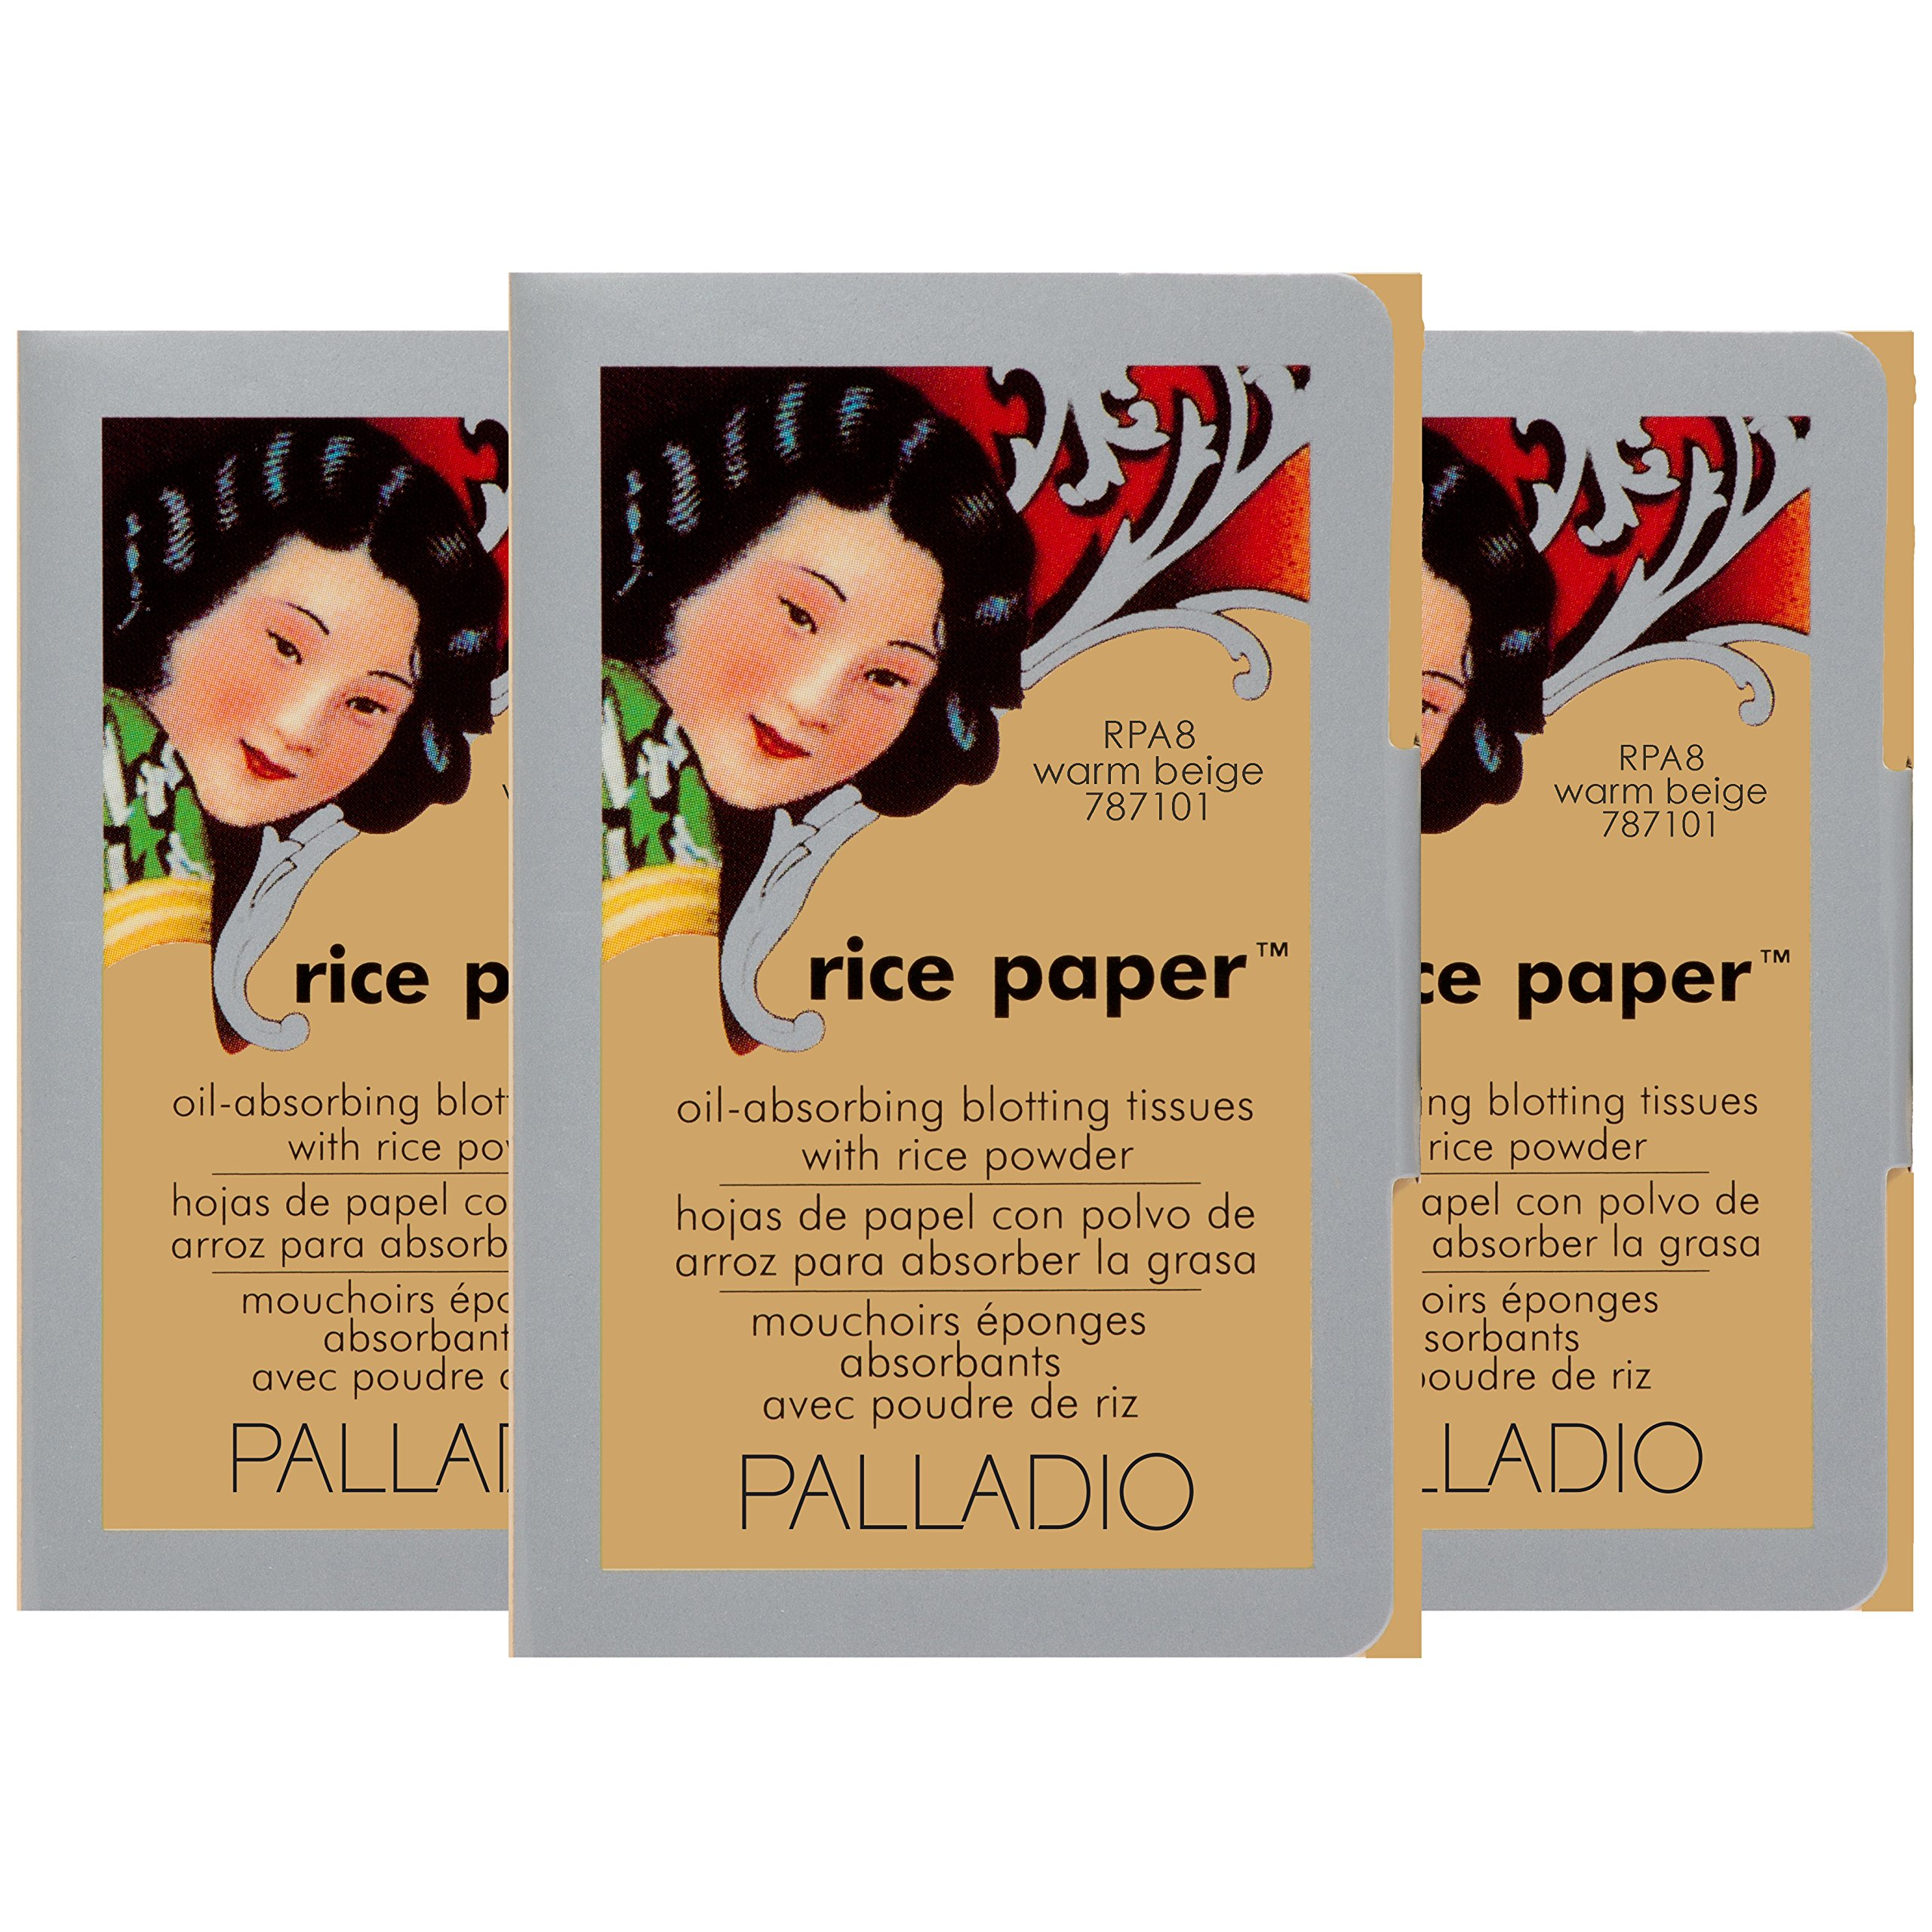 Amazon.com : Palladio Oil-absorbing Rice Powder - Warm